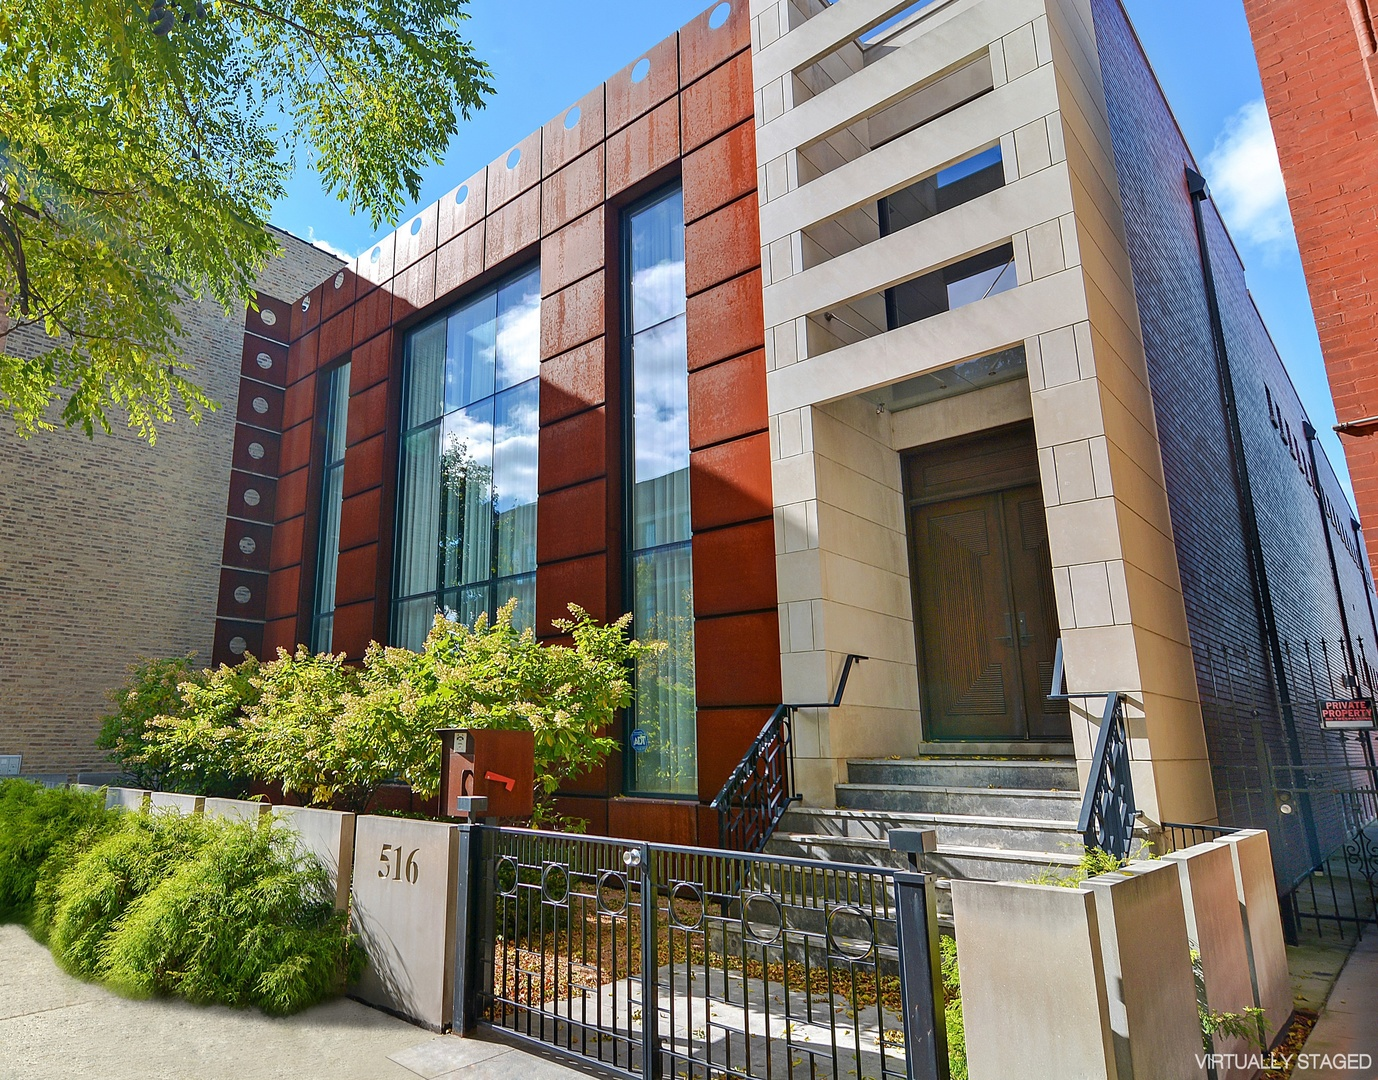 520 NORTH ARMOUR STREET, CHICAGO, IL 60642